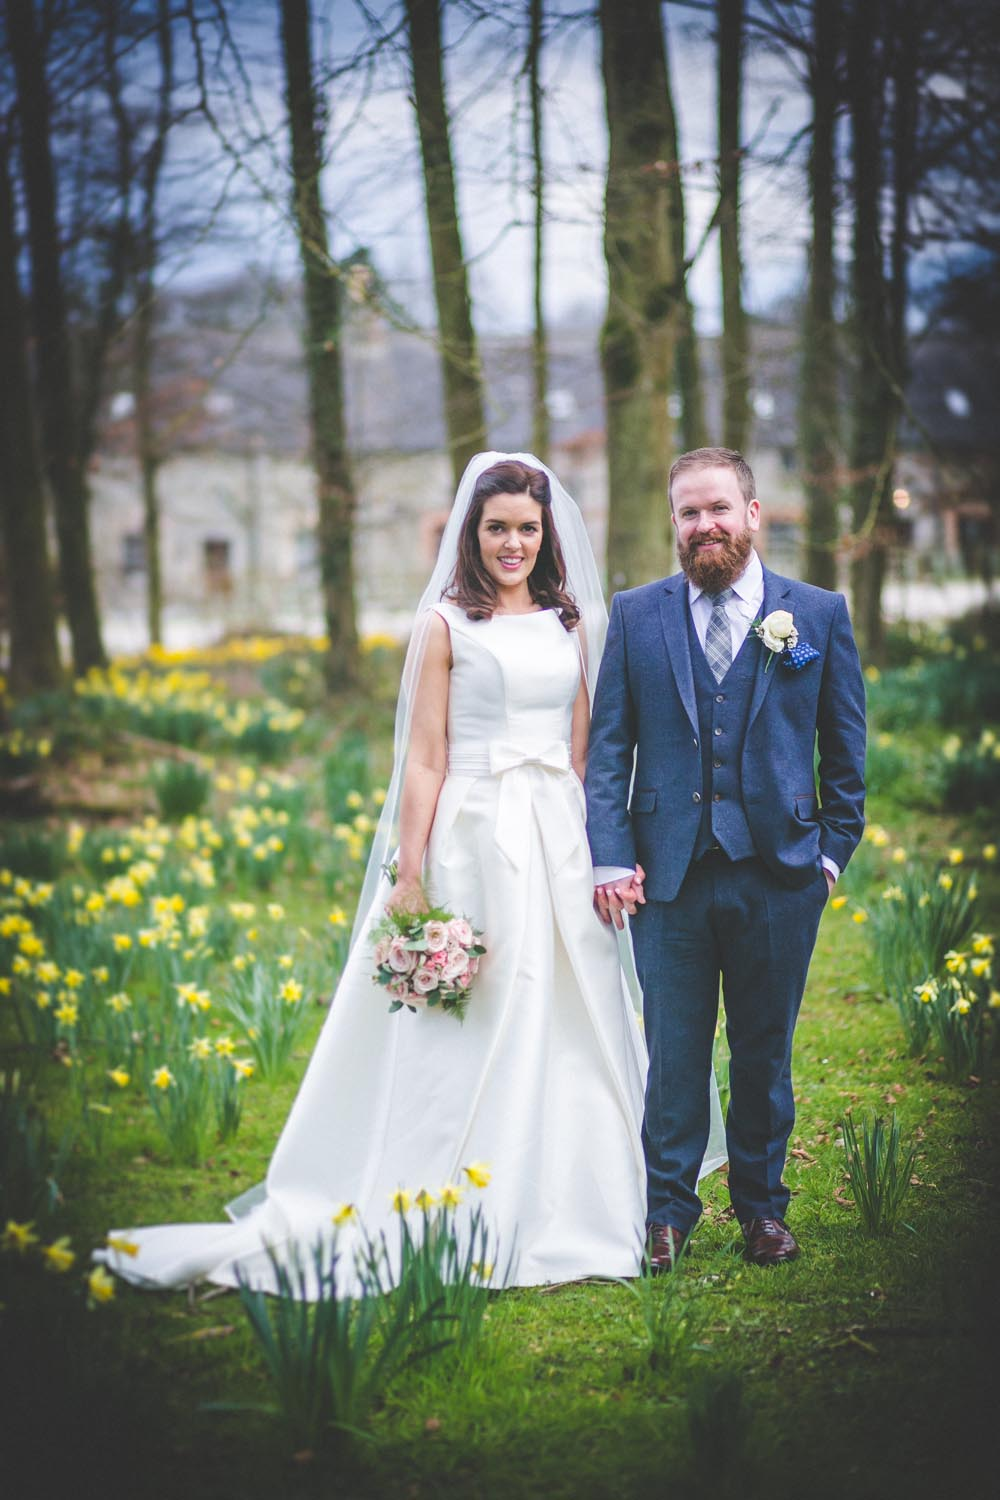 Step House wedding photographer Carlow Borris089.jpg